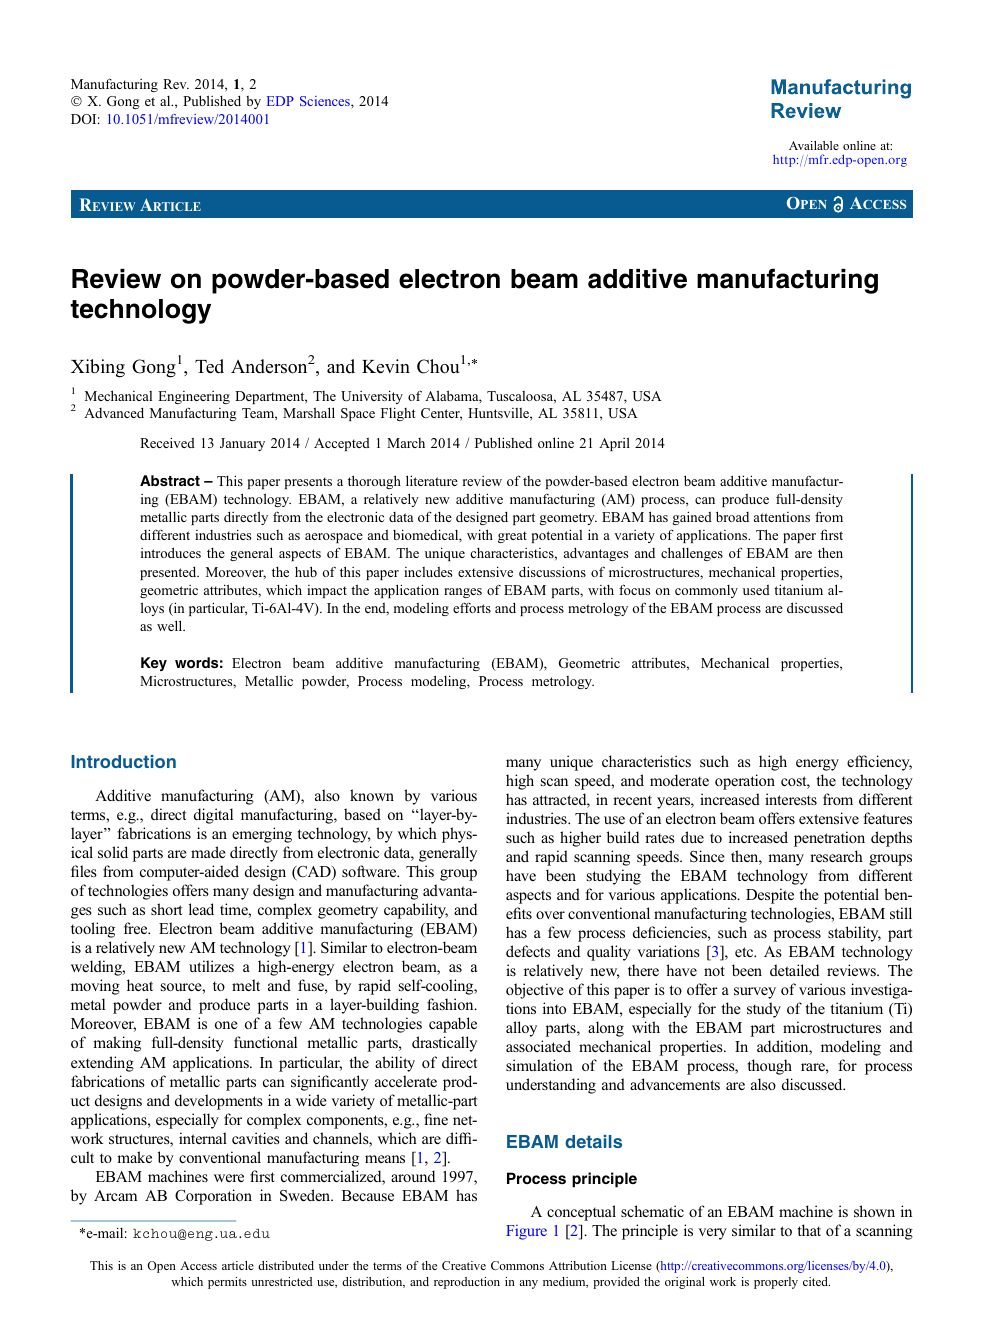 Review On Powder Based Electron Beam Additive Manufacturing